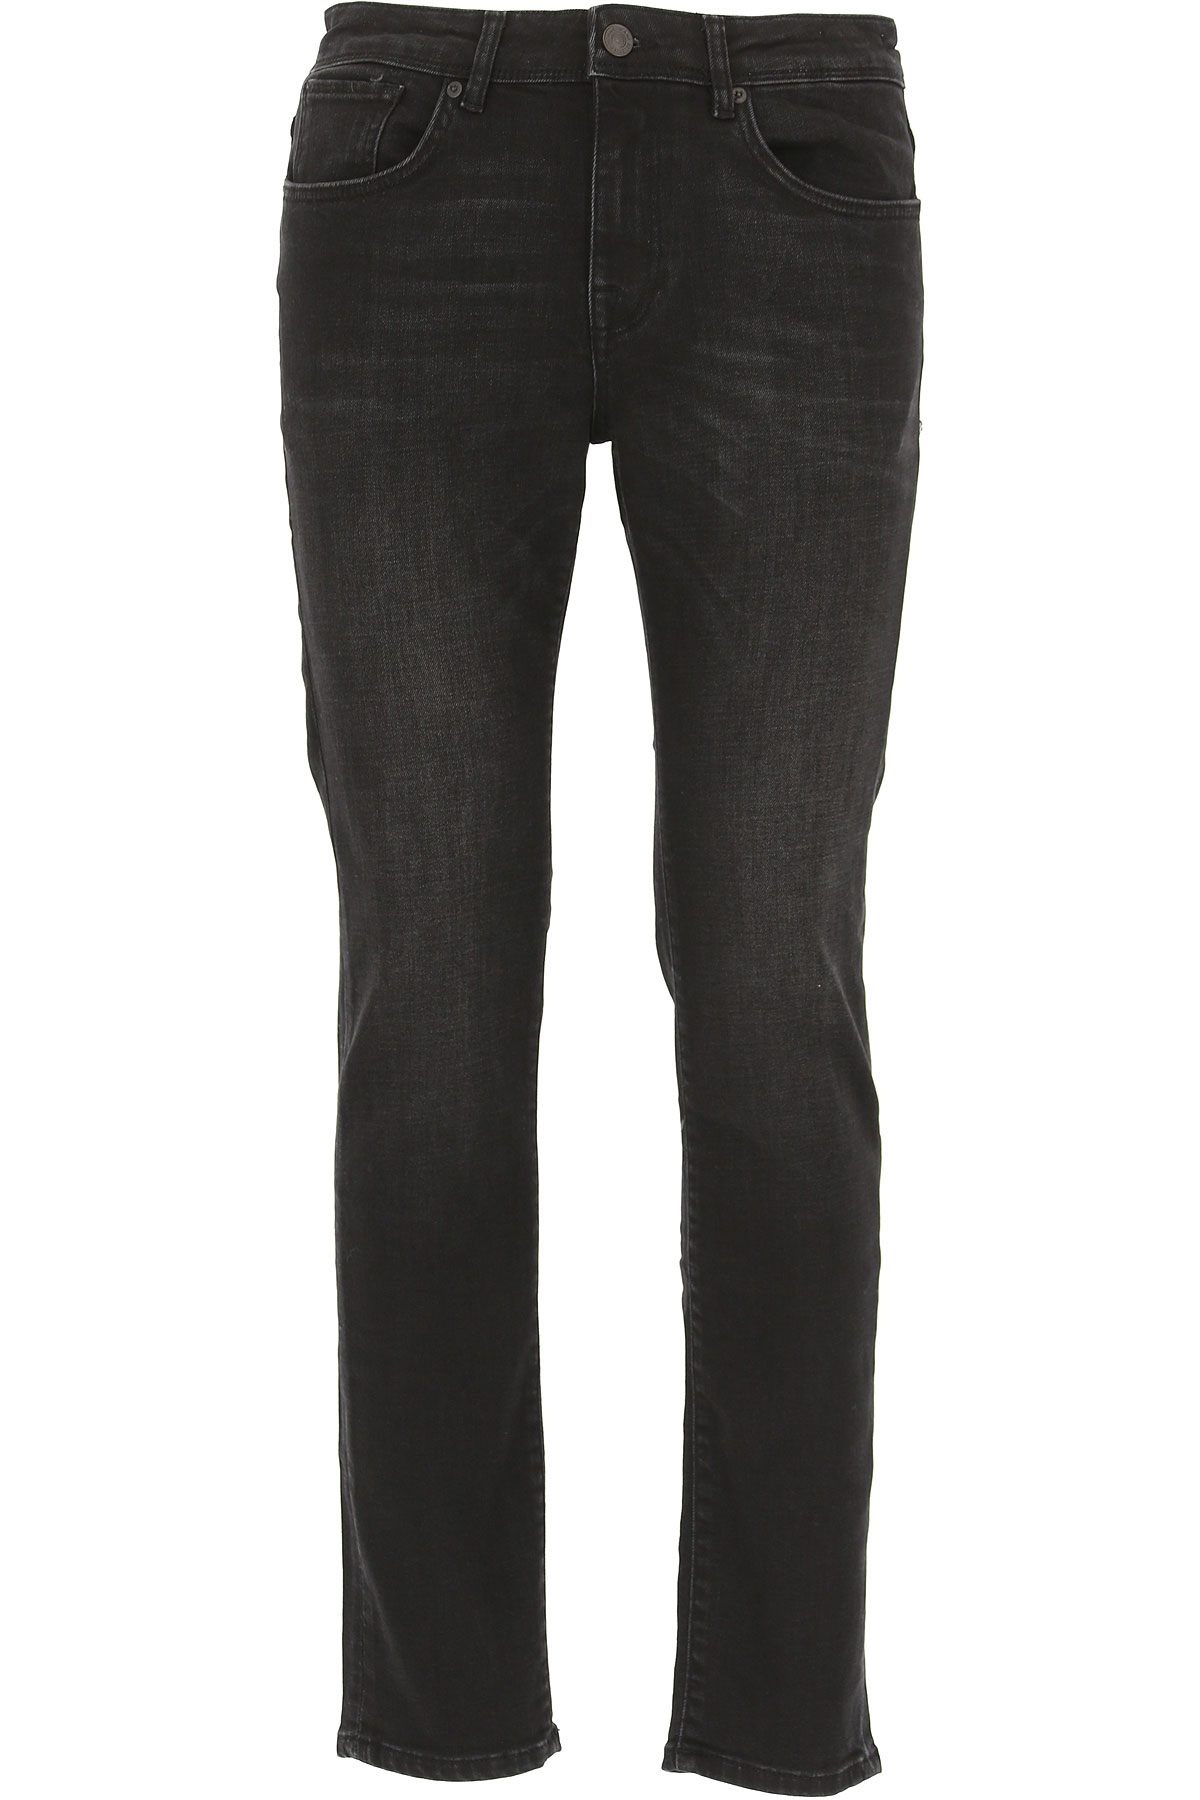 Image of Selected Jeans, Black, Cotton, 2017, 31 33 35